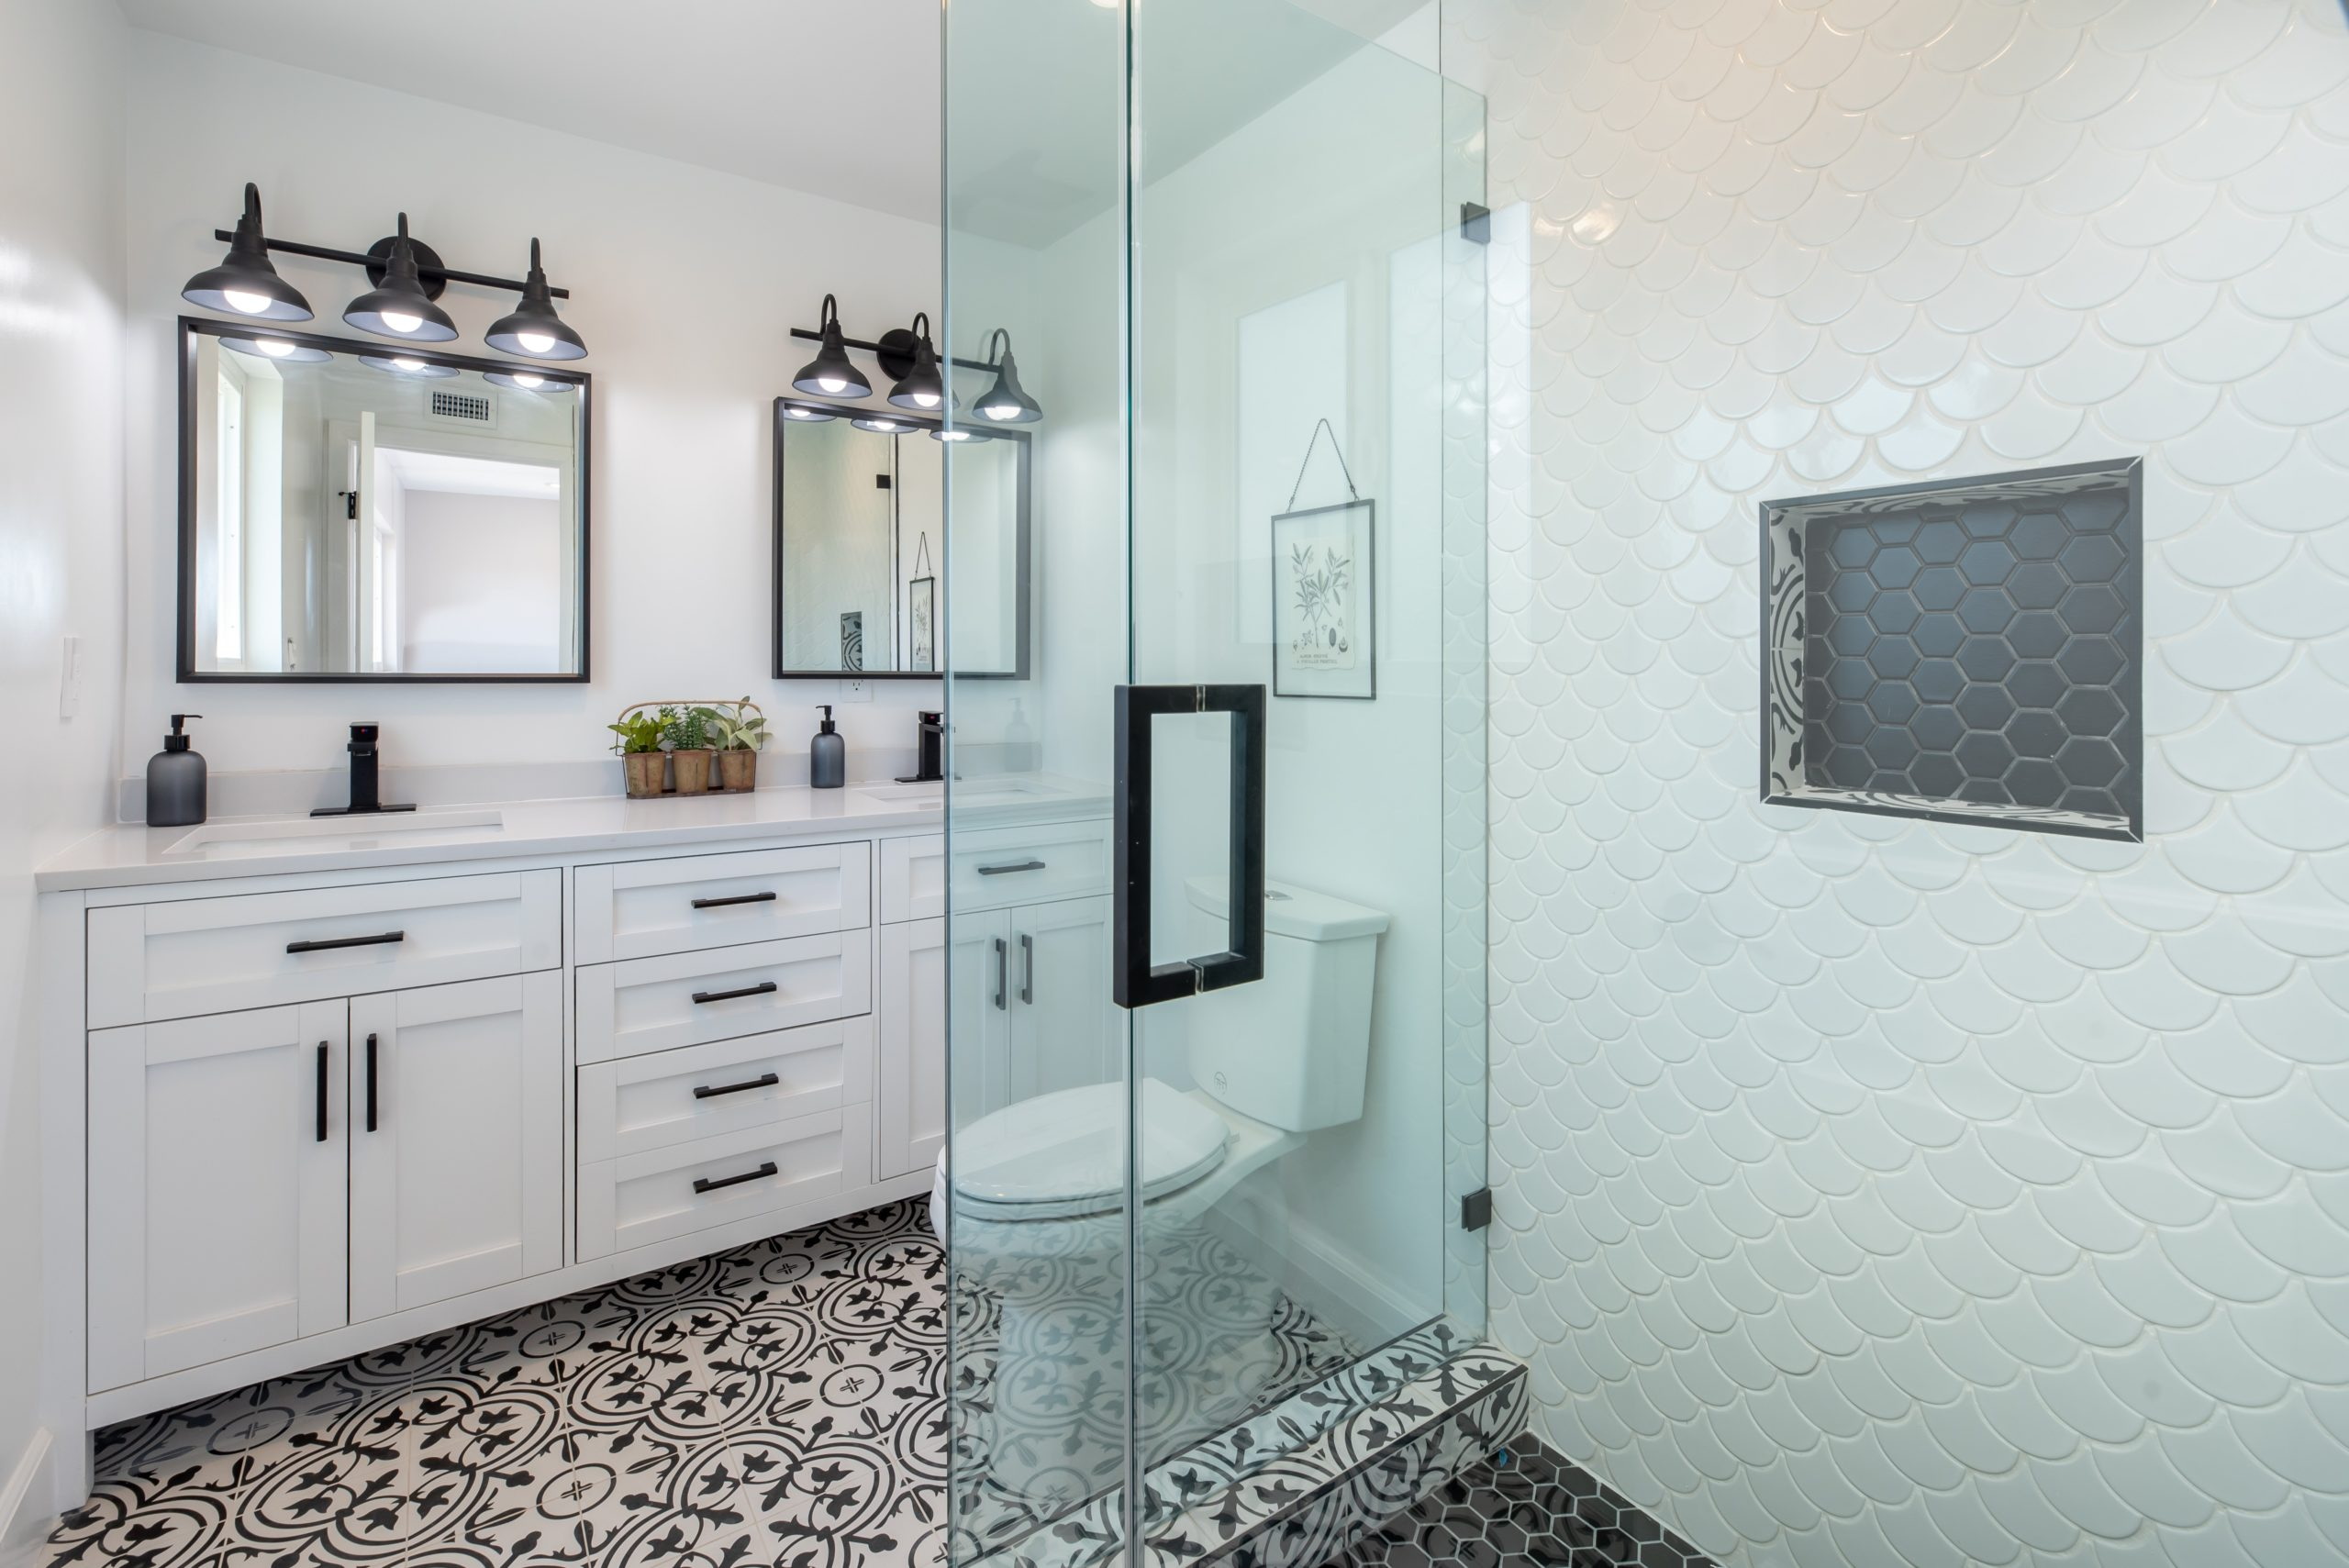 12 Bathroom Remodel Ideas that Pay Off During House Resale